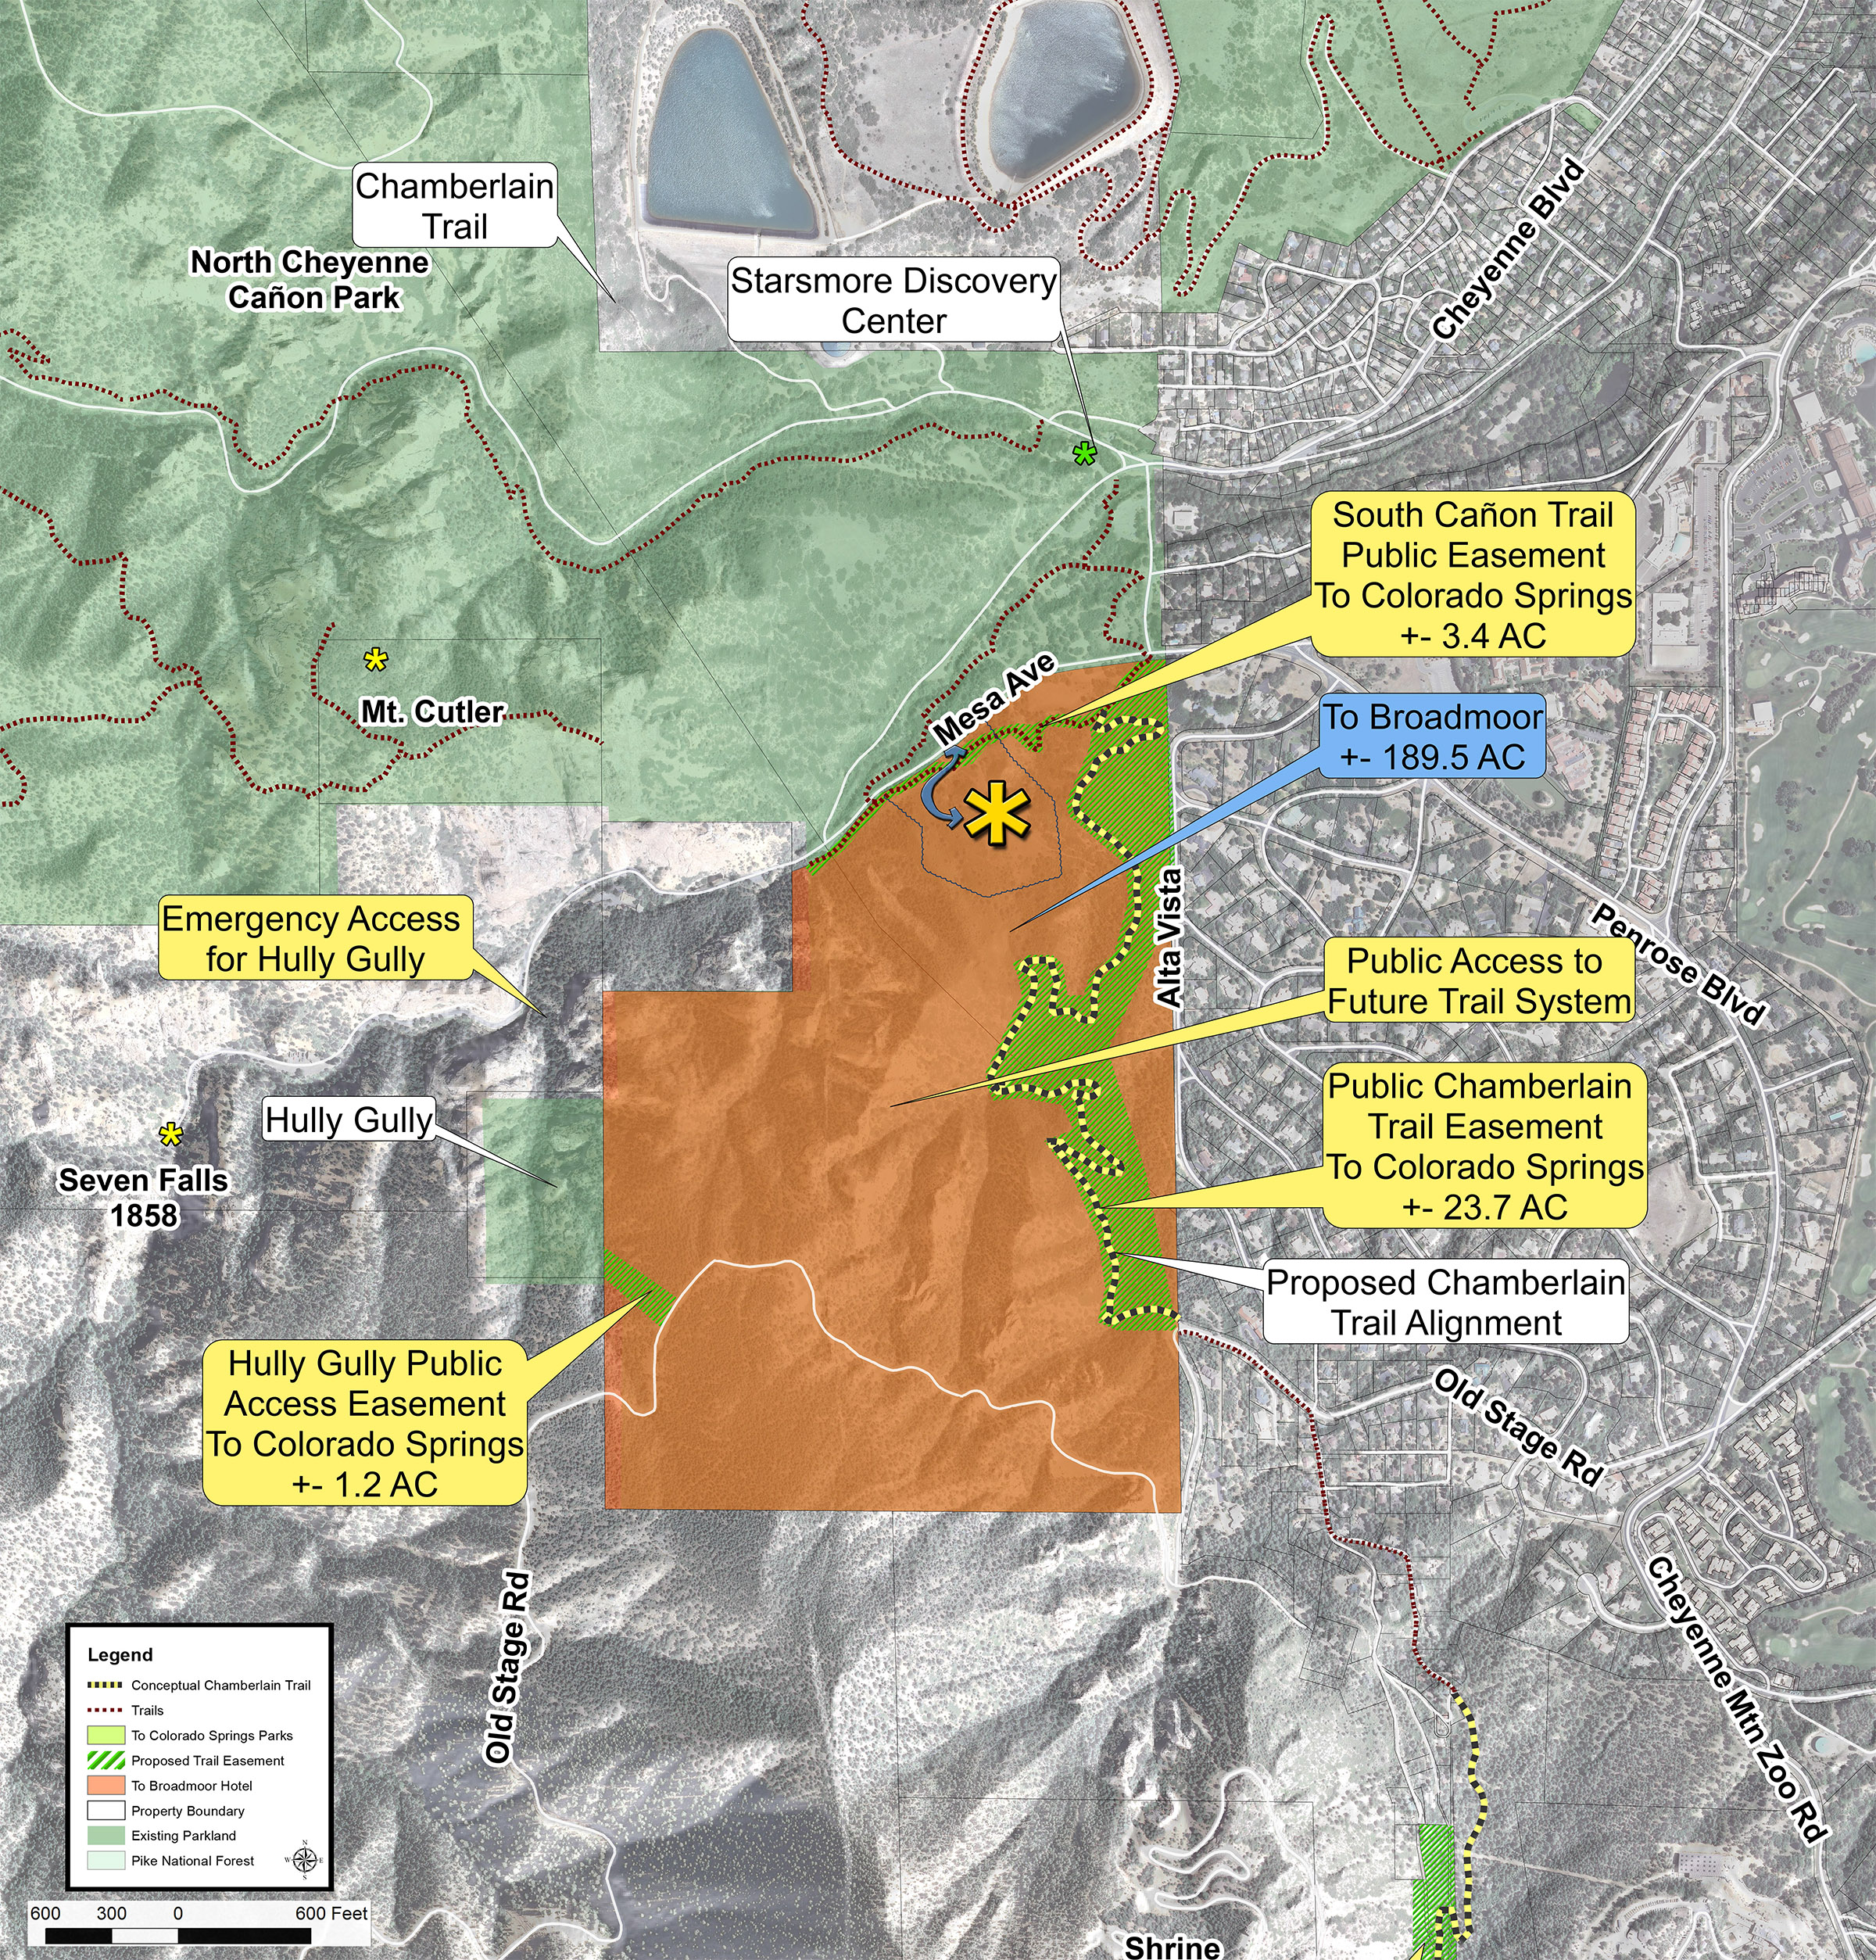 Website Site Map: North Cheyenne Cañon Park South / Strawberry Hill